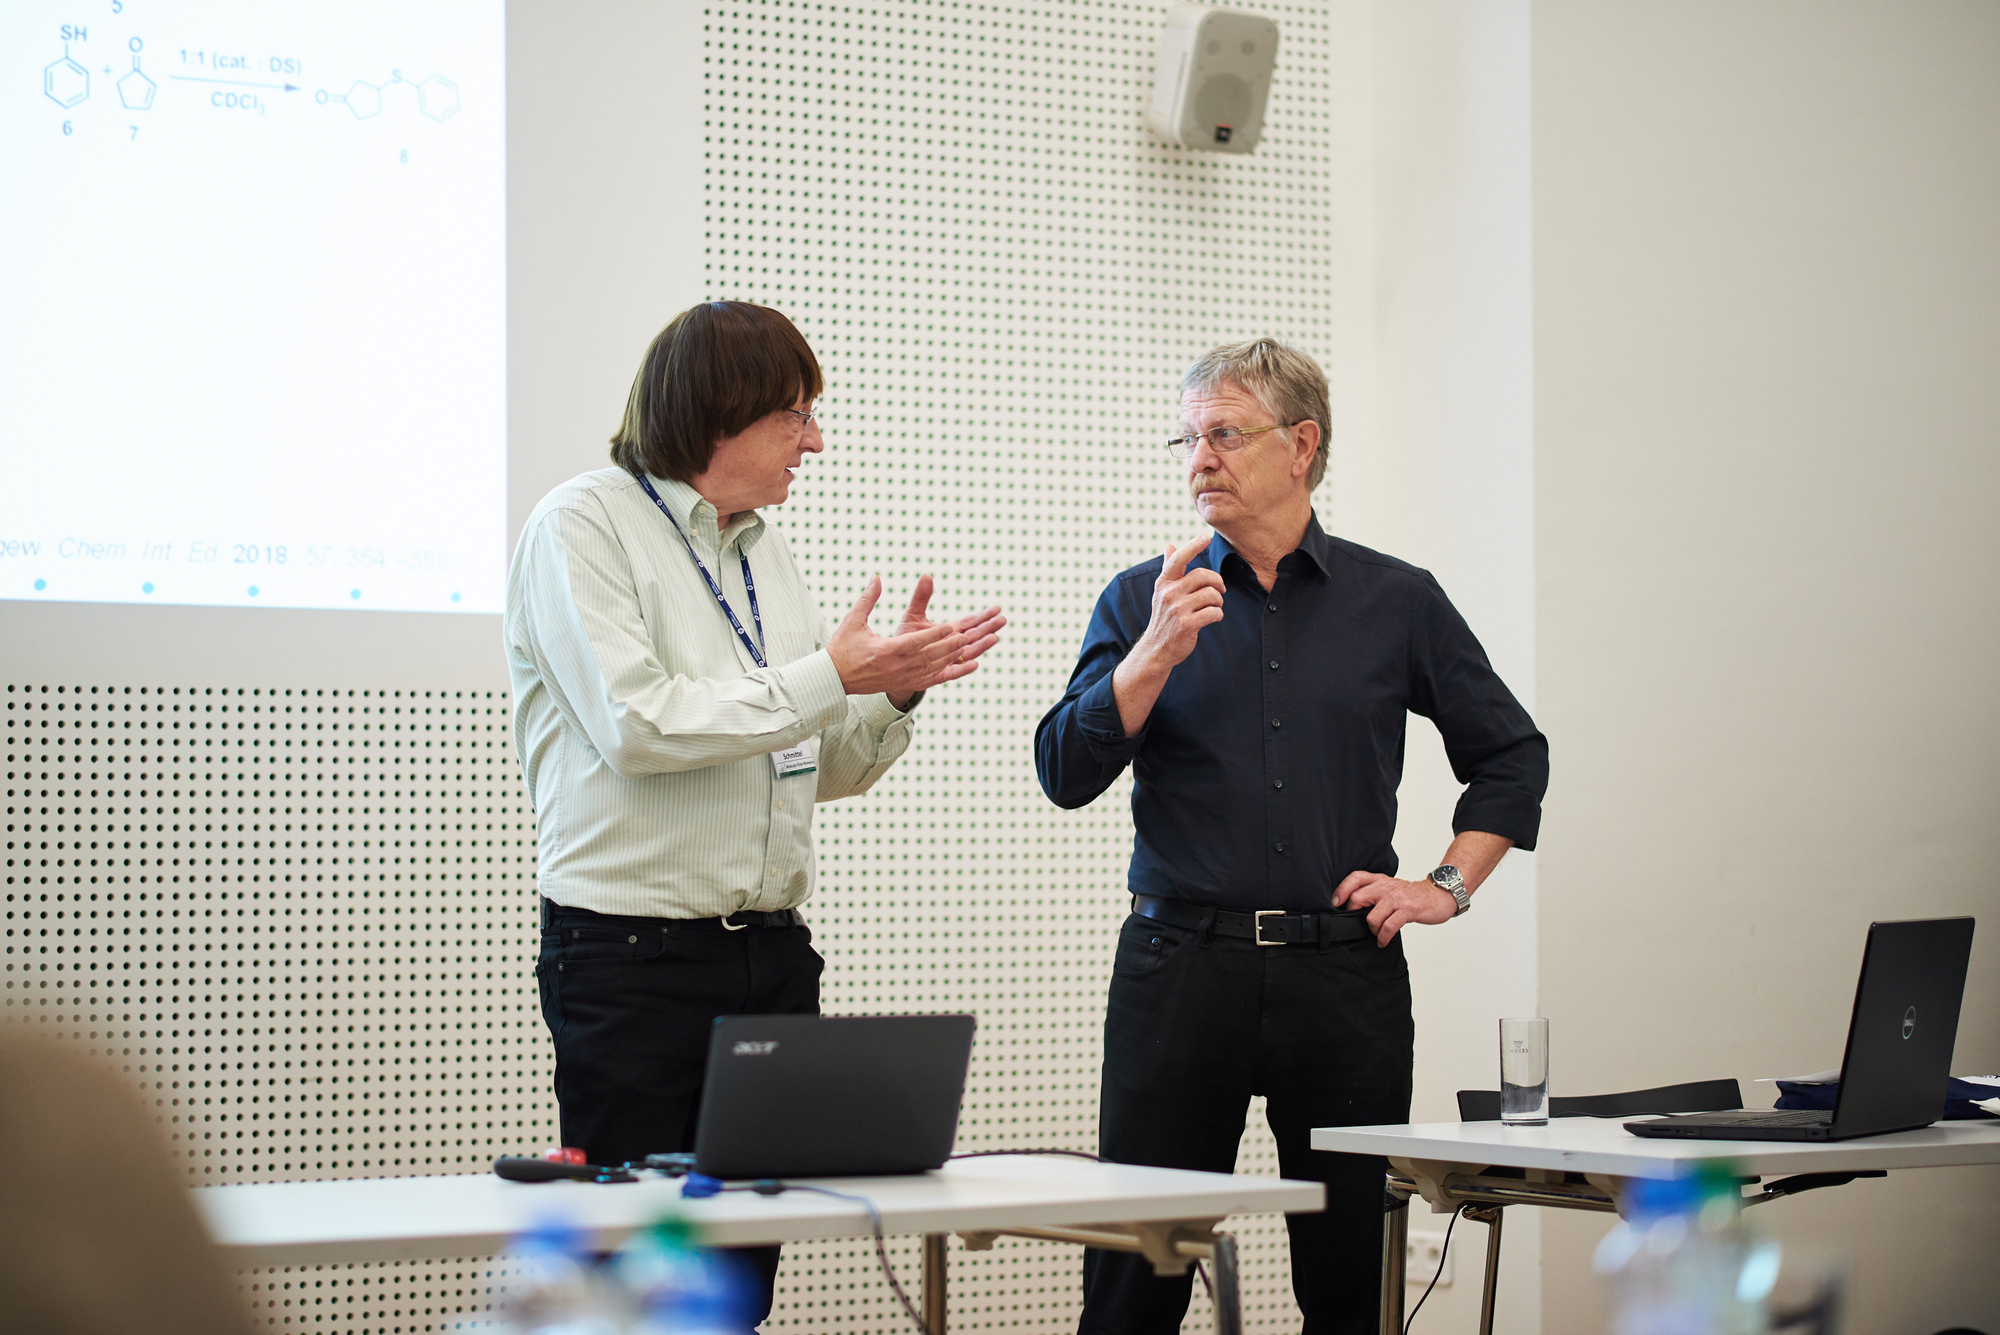 Michael Schmittel and Rainer Herges. Photo: Igor Rončević